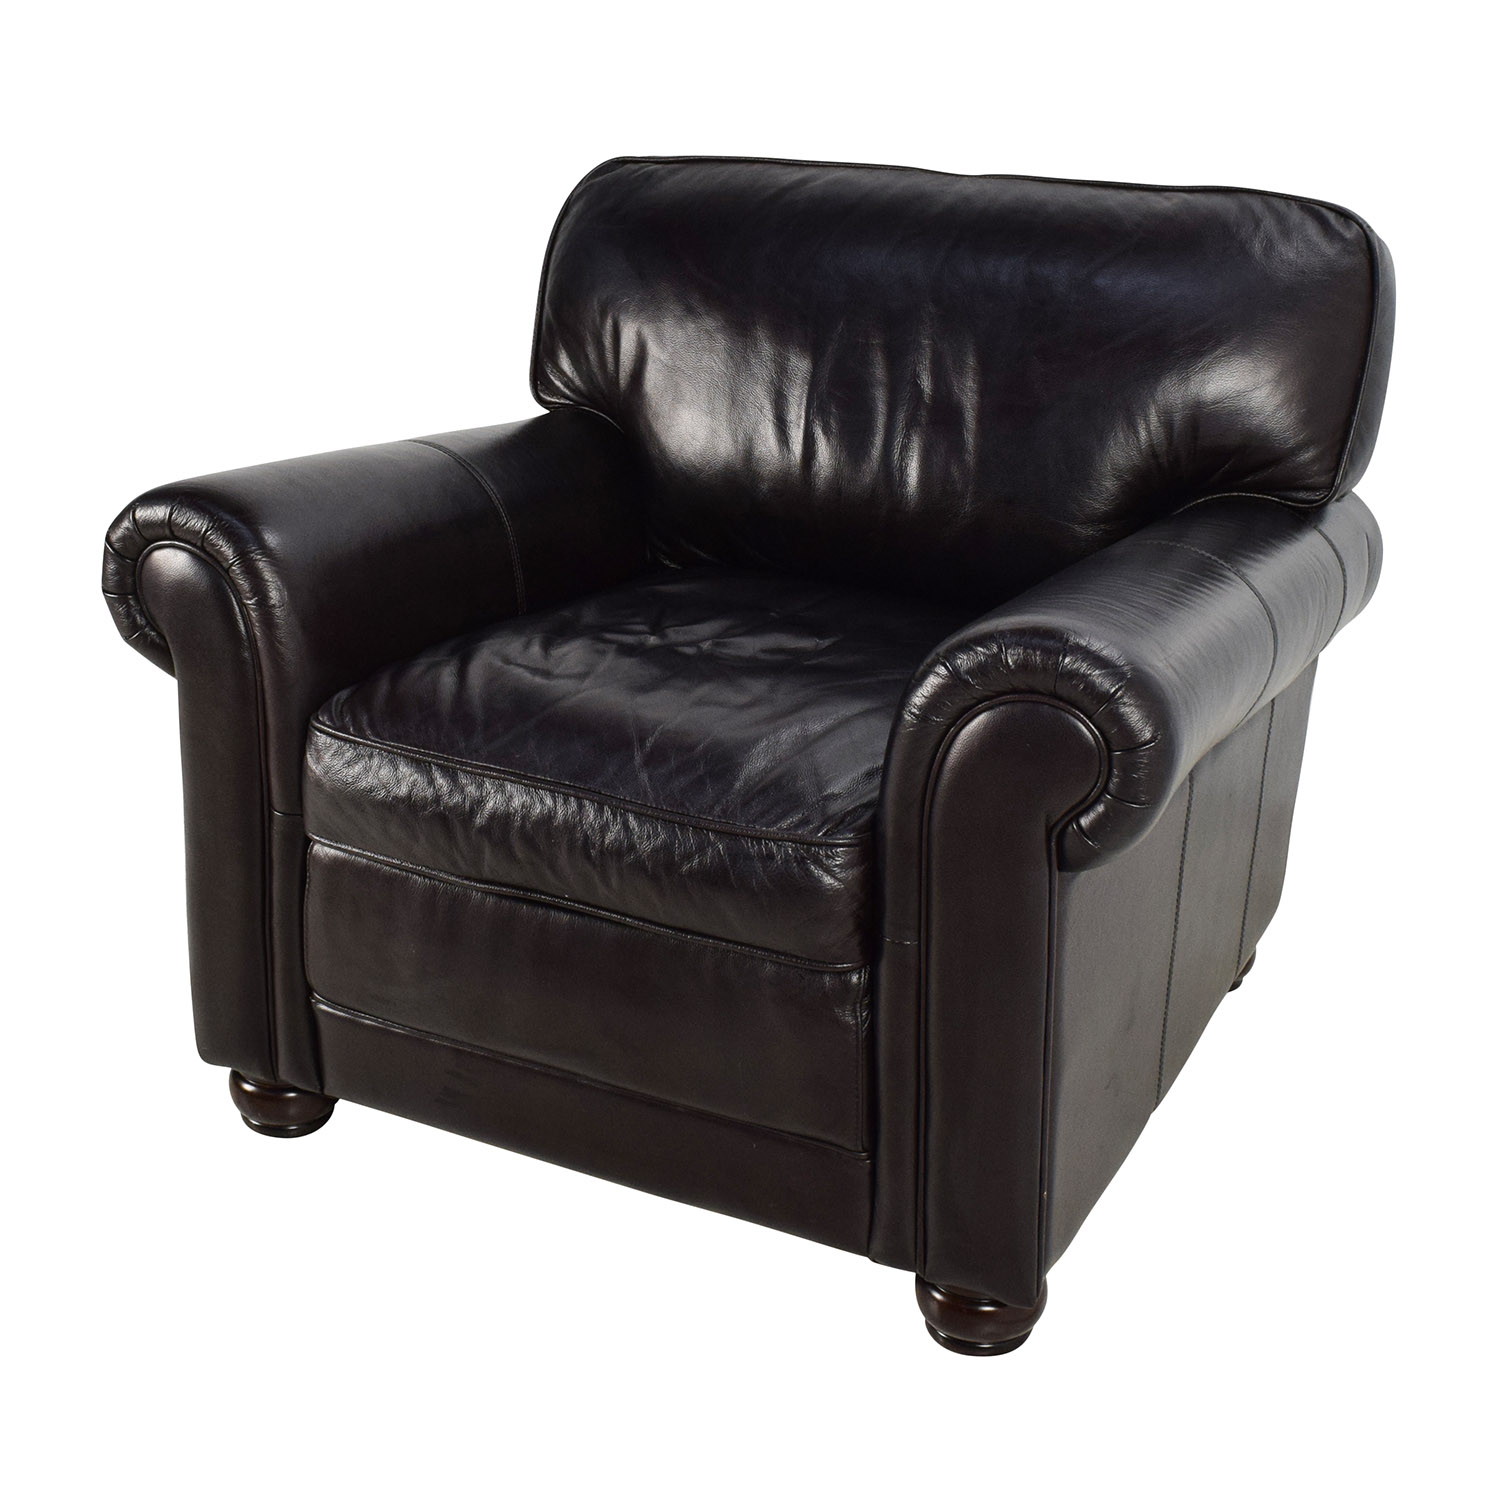 74% OFF - Bobs Furniture Bob's Furniture Leather Dark ...